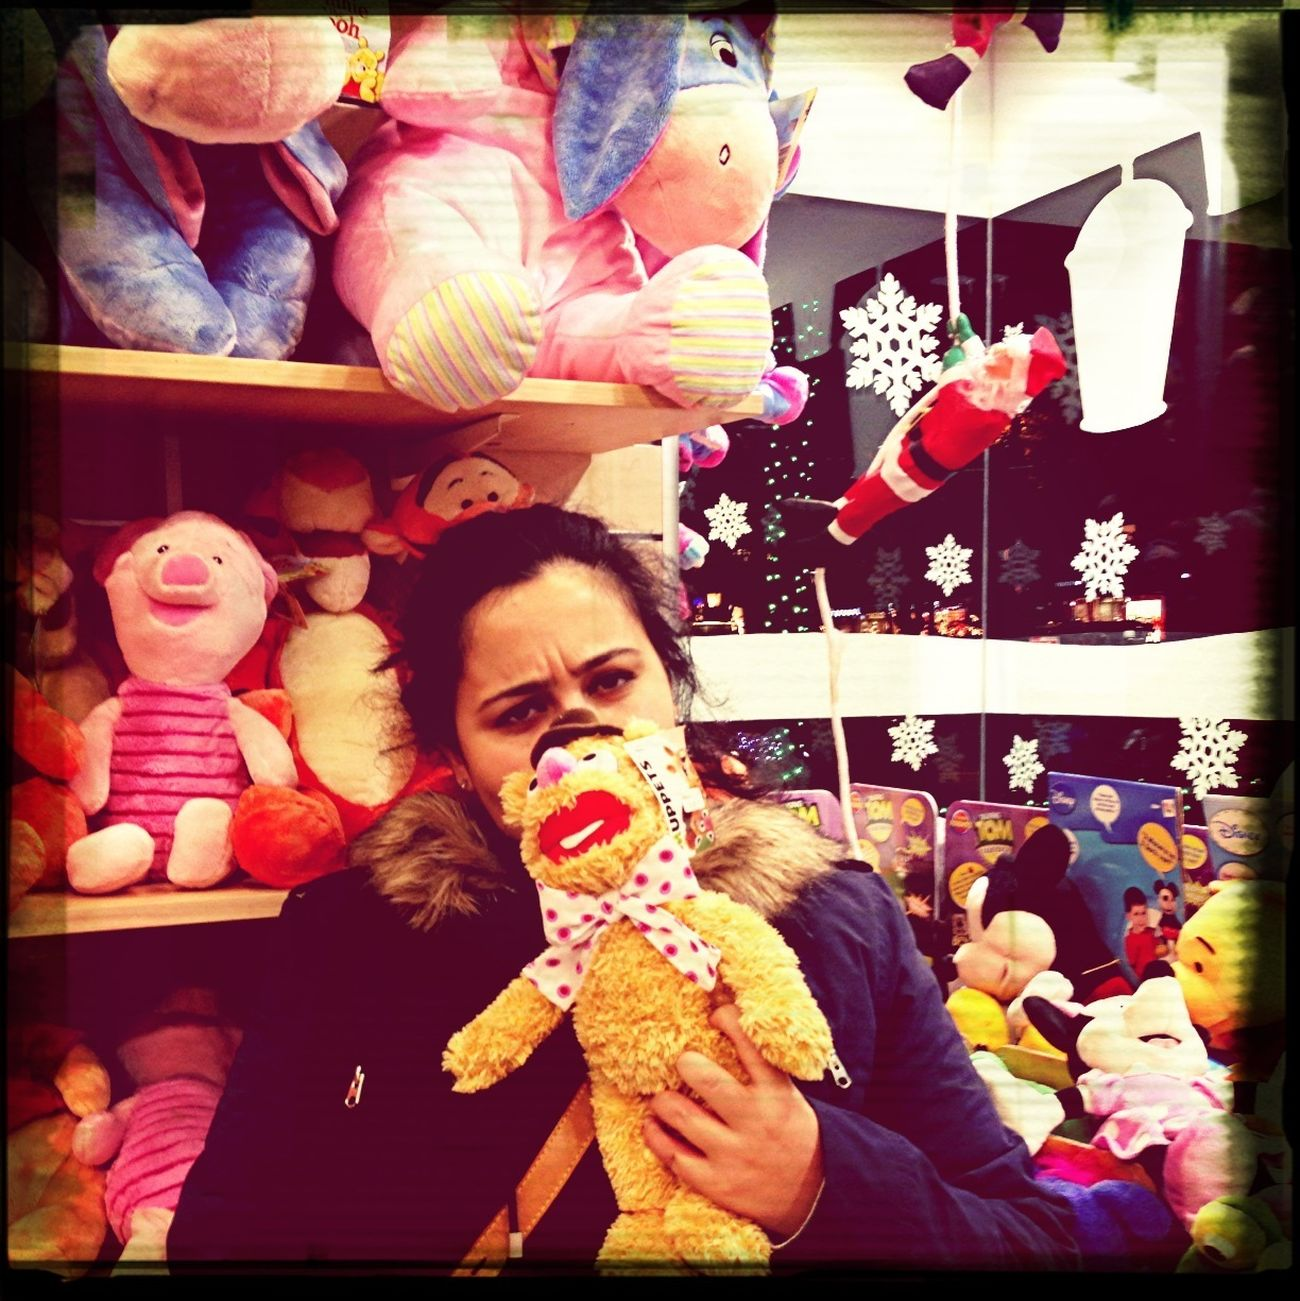 #lastnight #muppet #toyzshop